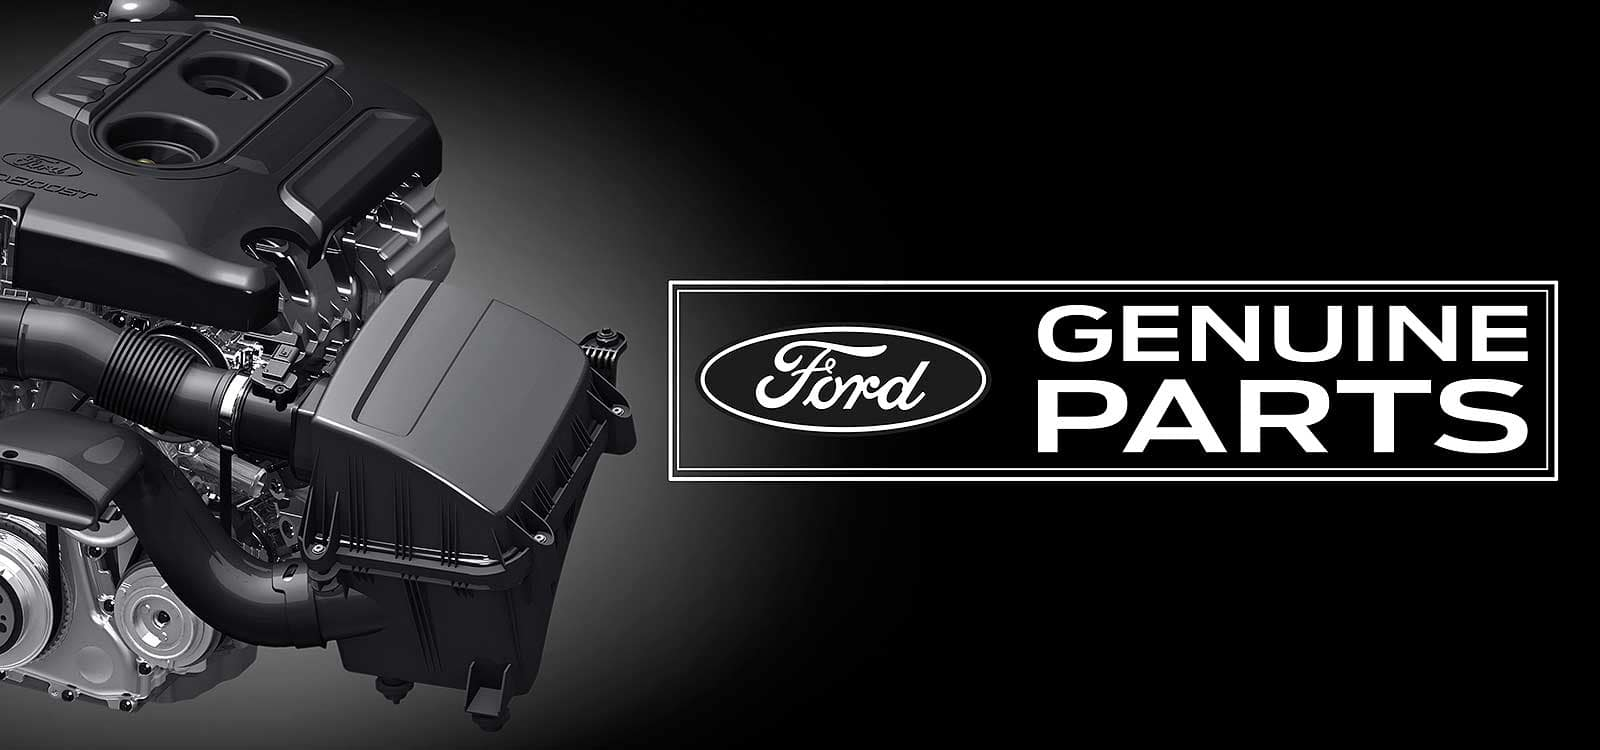 When you purchase parts through hutcheson ford you can rest assured that you are getting the highest quality parts from experts that know your vehicle